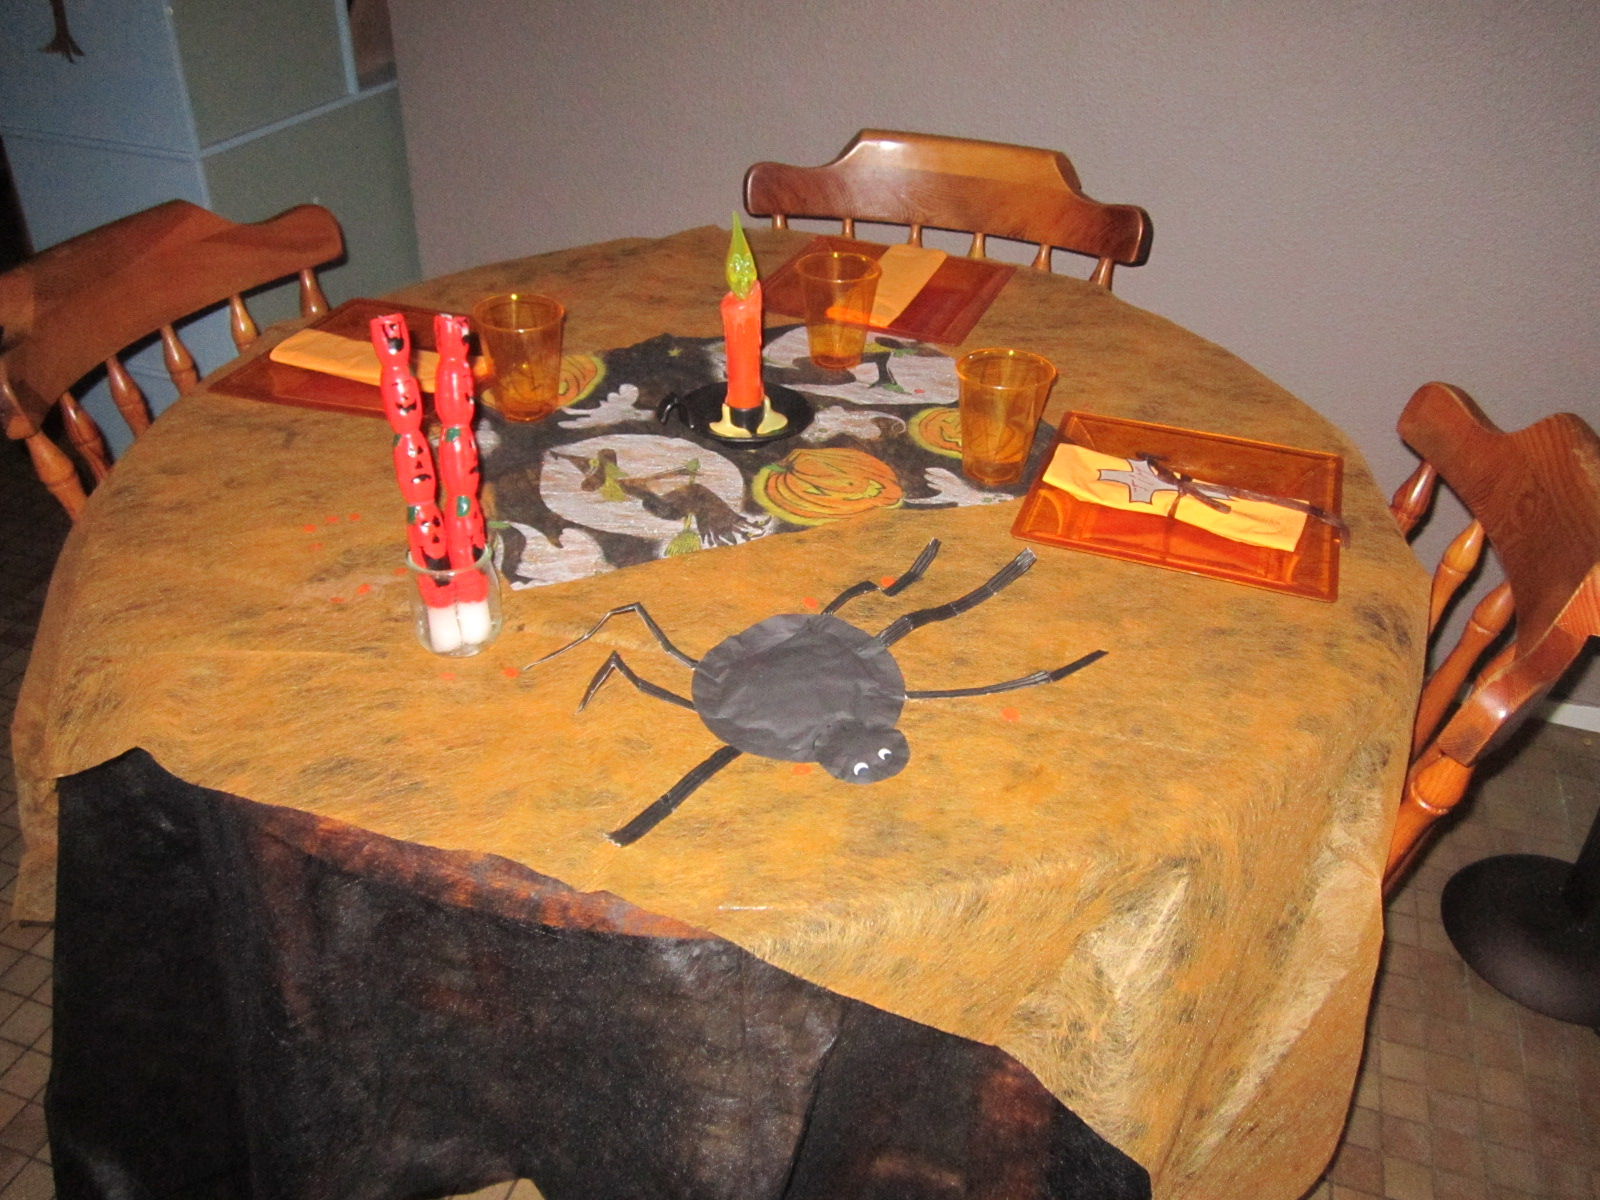 Decoration De Table Pour Halloween Décoration De Table Pour Halloween 1